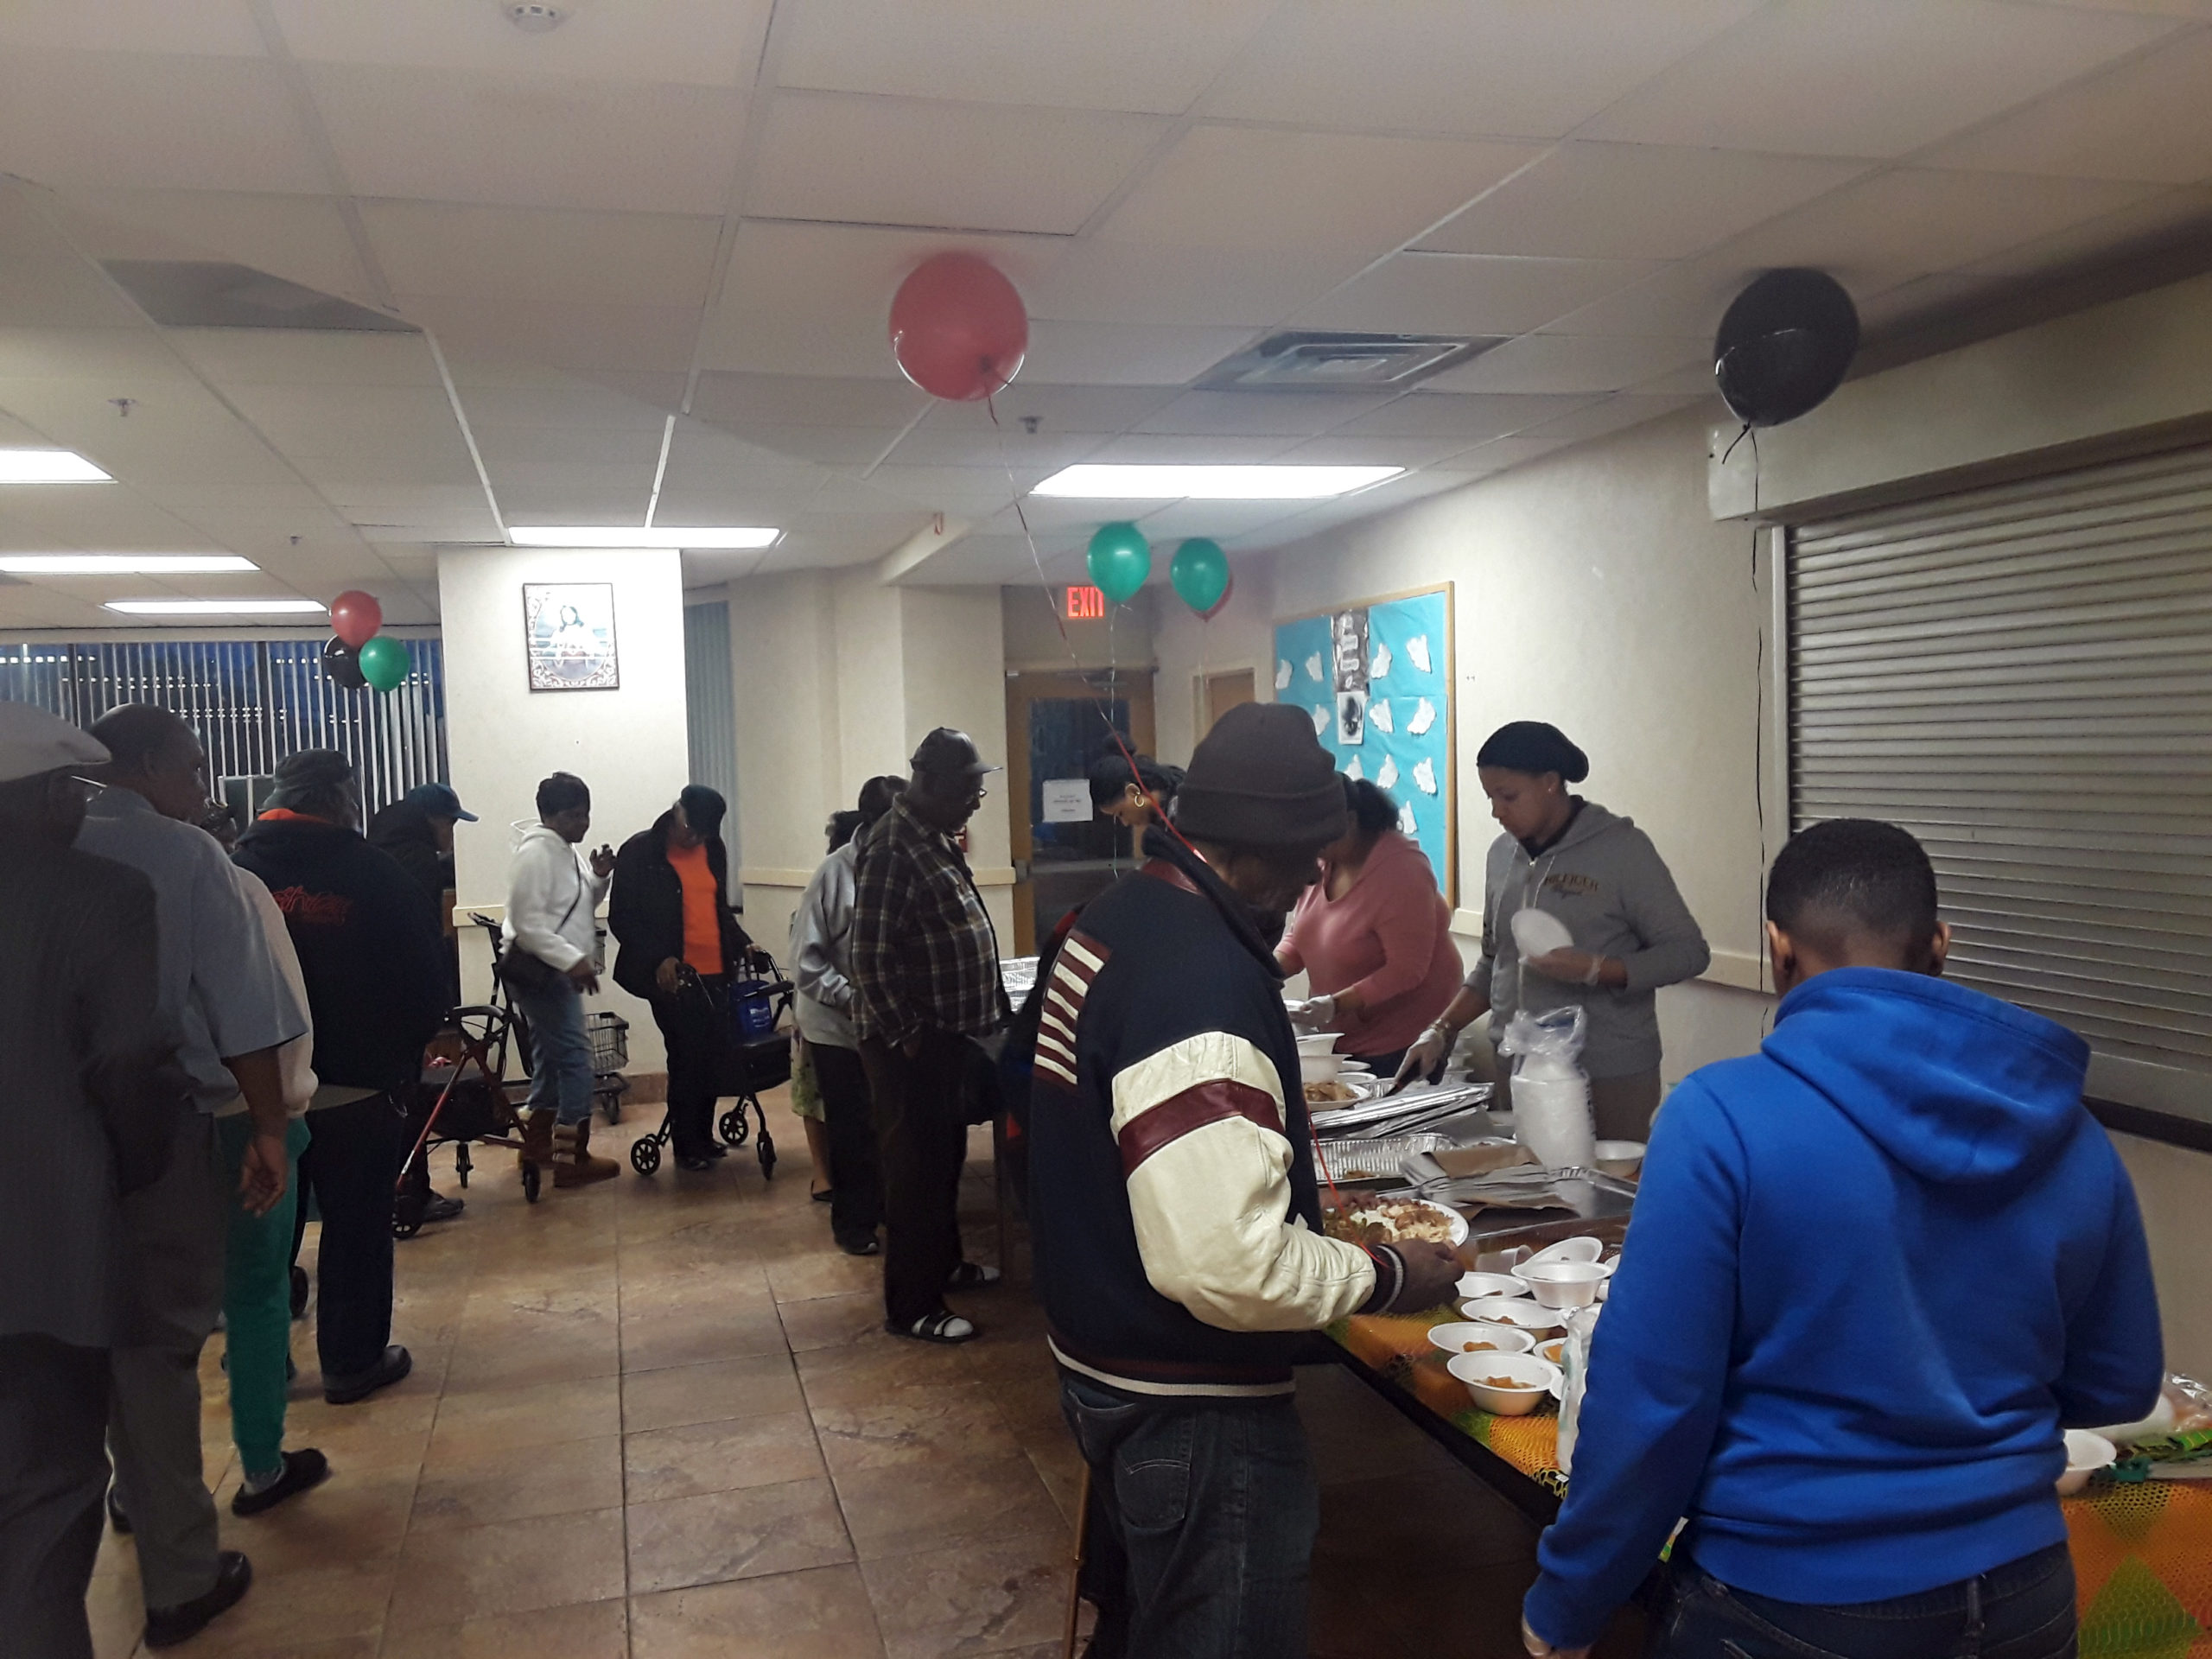 Associates Black History Dinner Getting Food